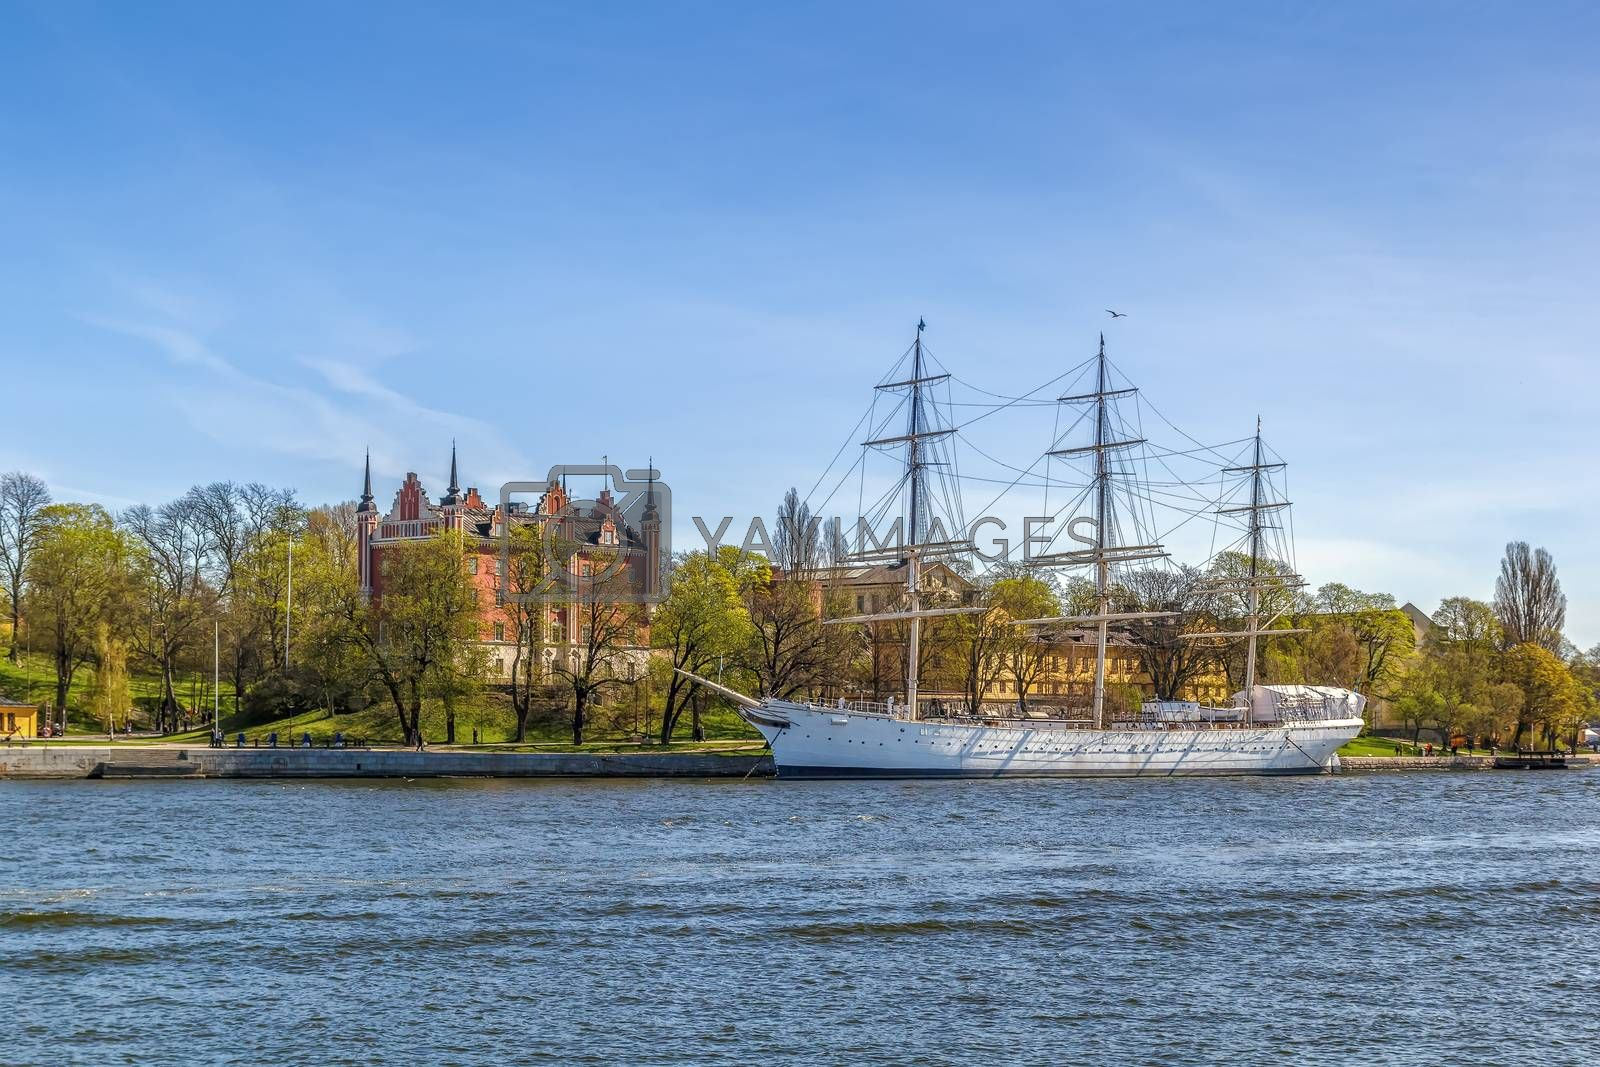 af Chapman (ship) in Stockholm by borisb17